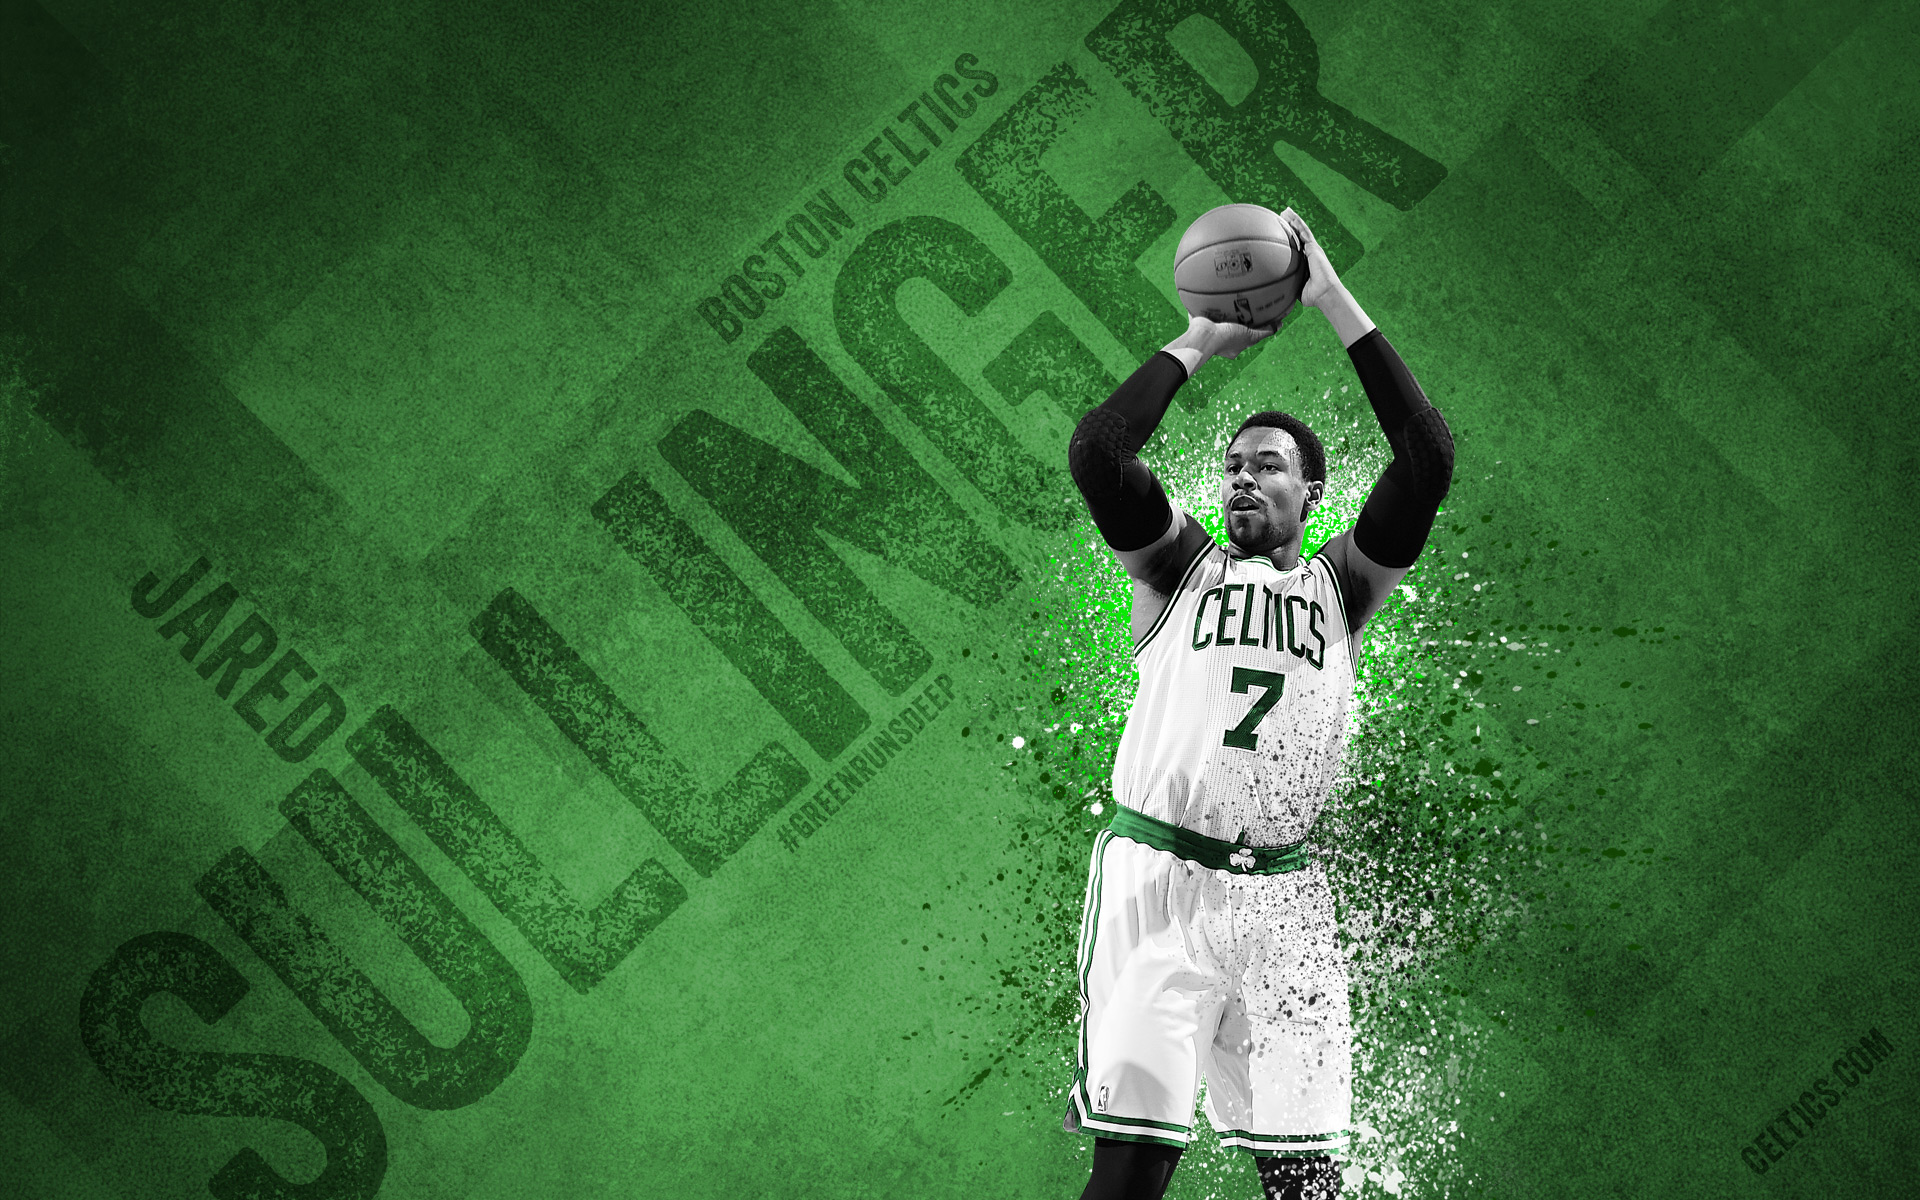 Desktop wallpaper boston celtics for Terengganu home wallpaper 2016